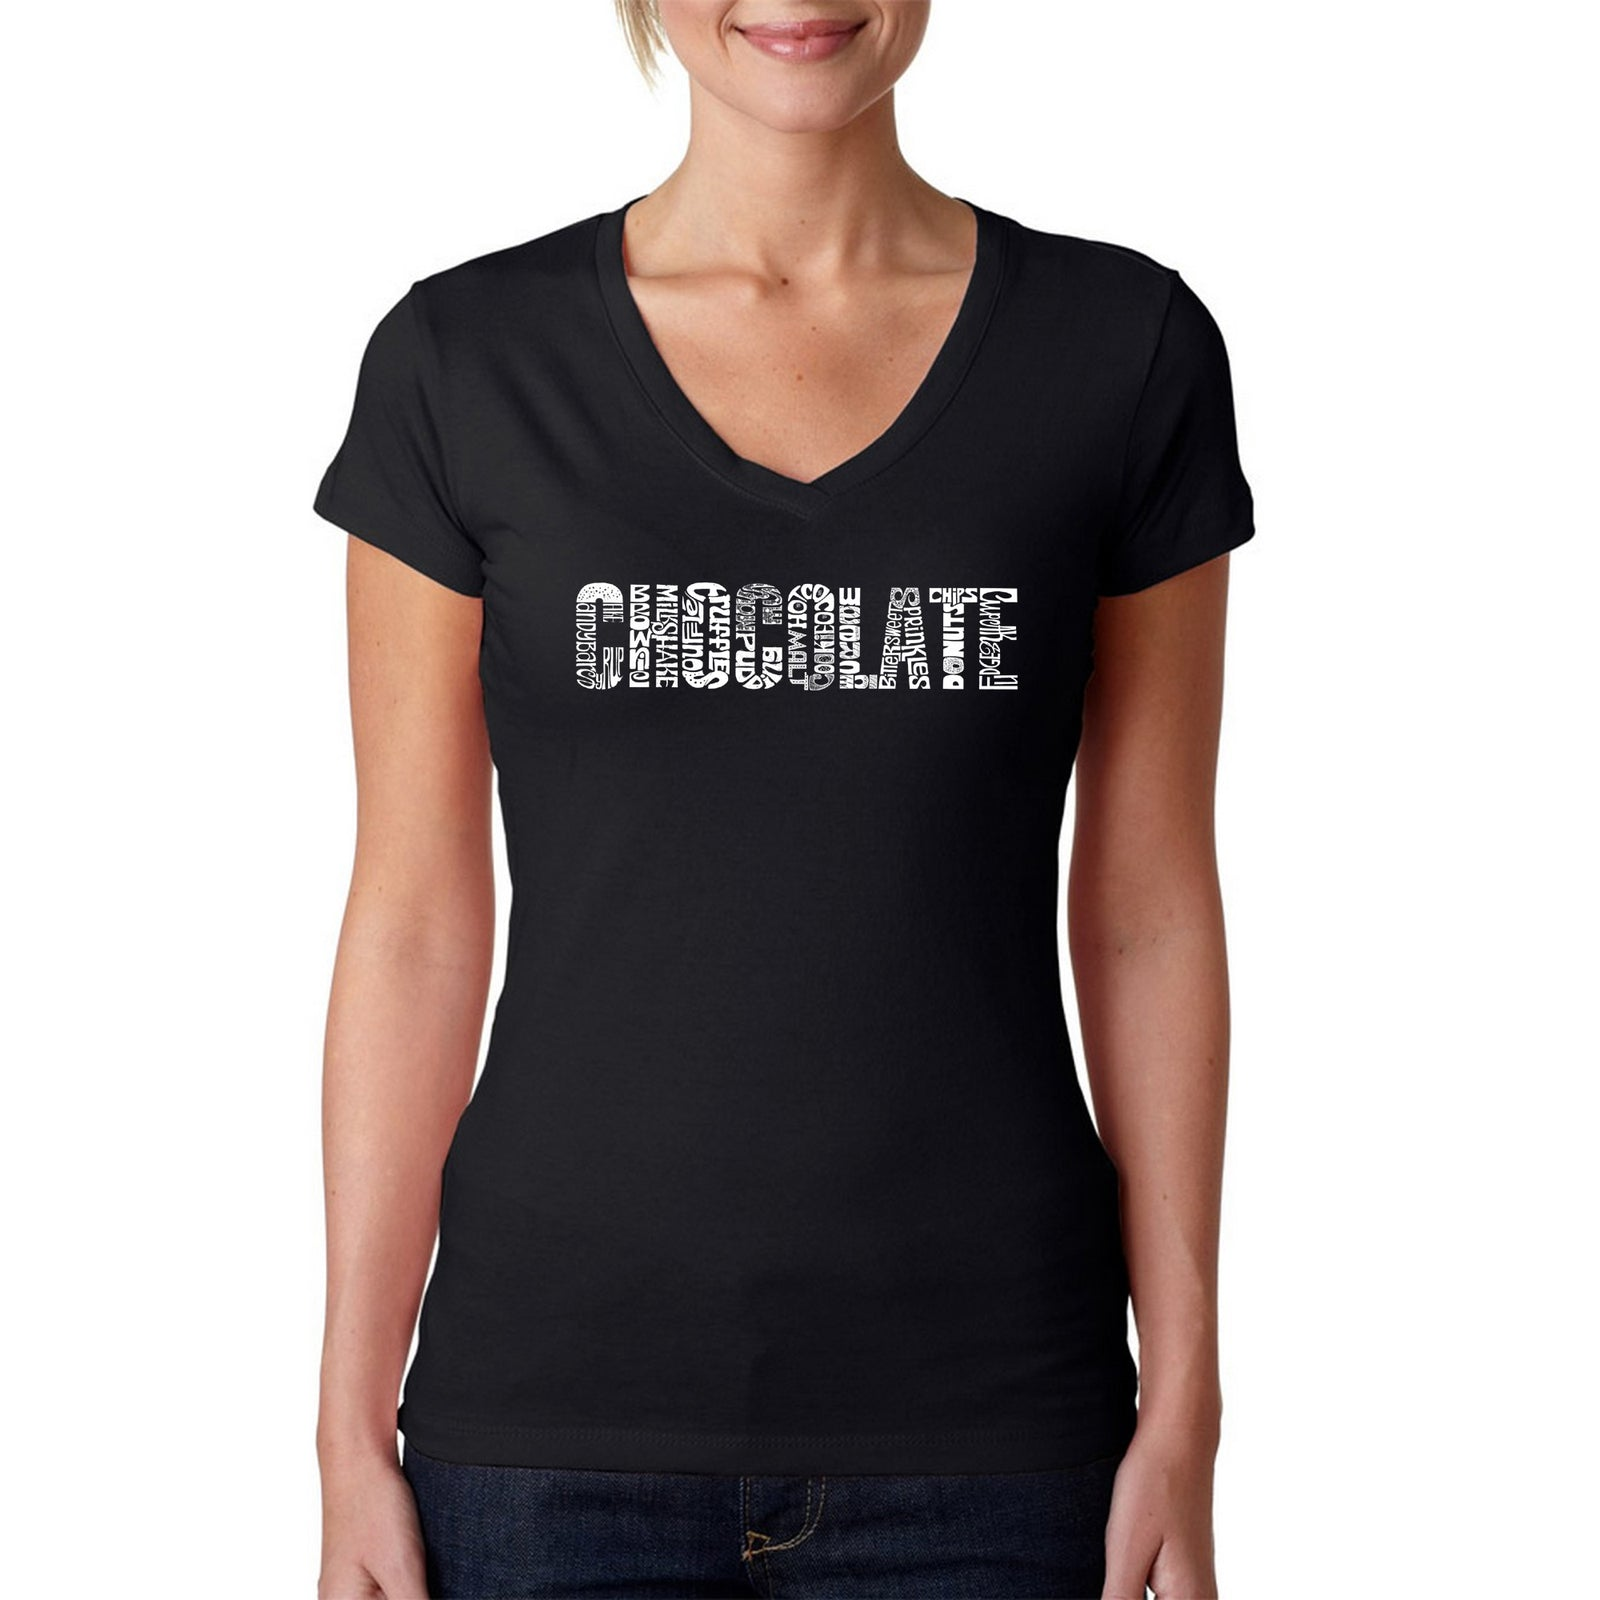 Women's V-Neck T-Shirt - Different foods made with chocolate